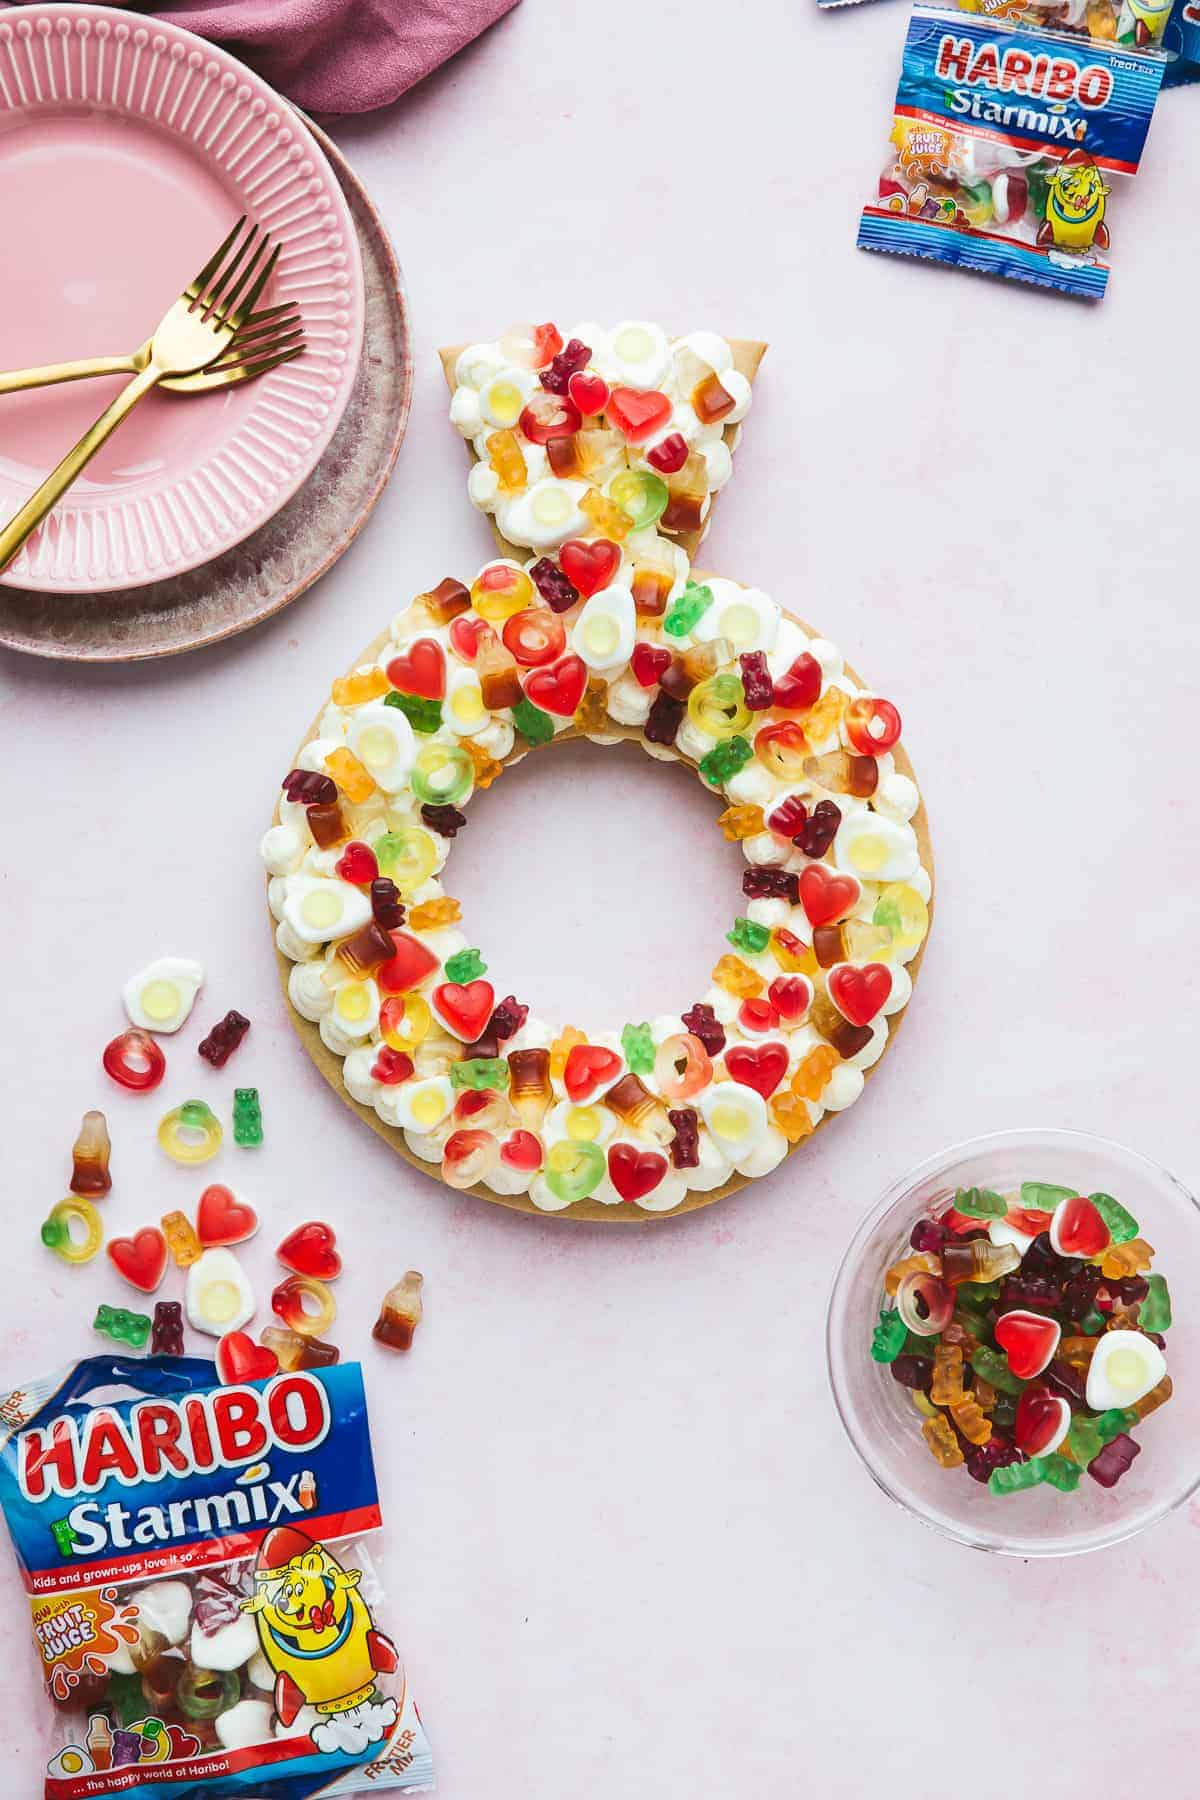 A cream tart in a ring shape filled with vanilla buttercream and decorated with HARIBO sweets.